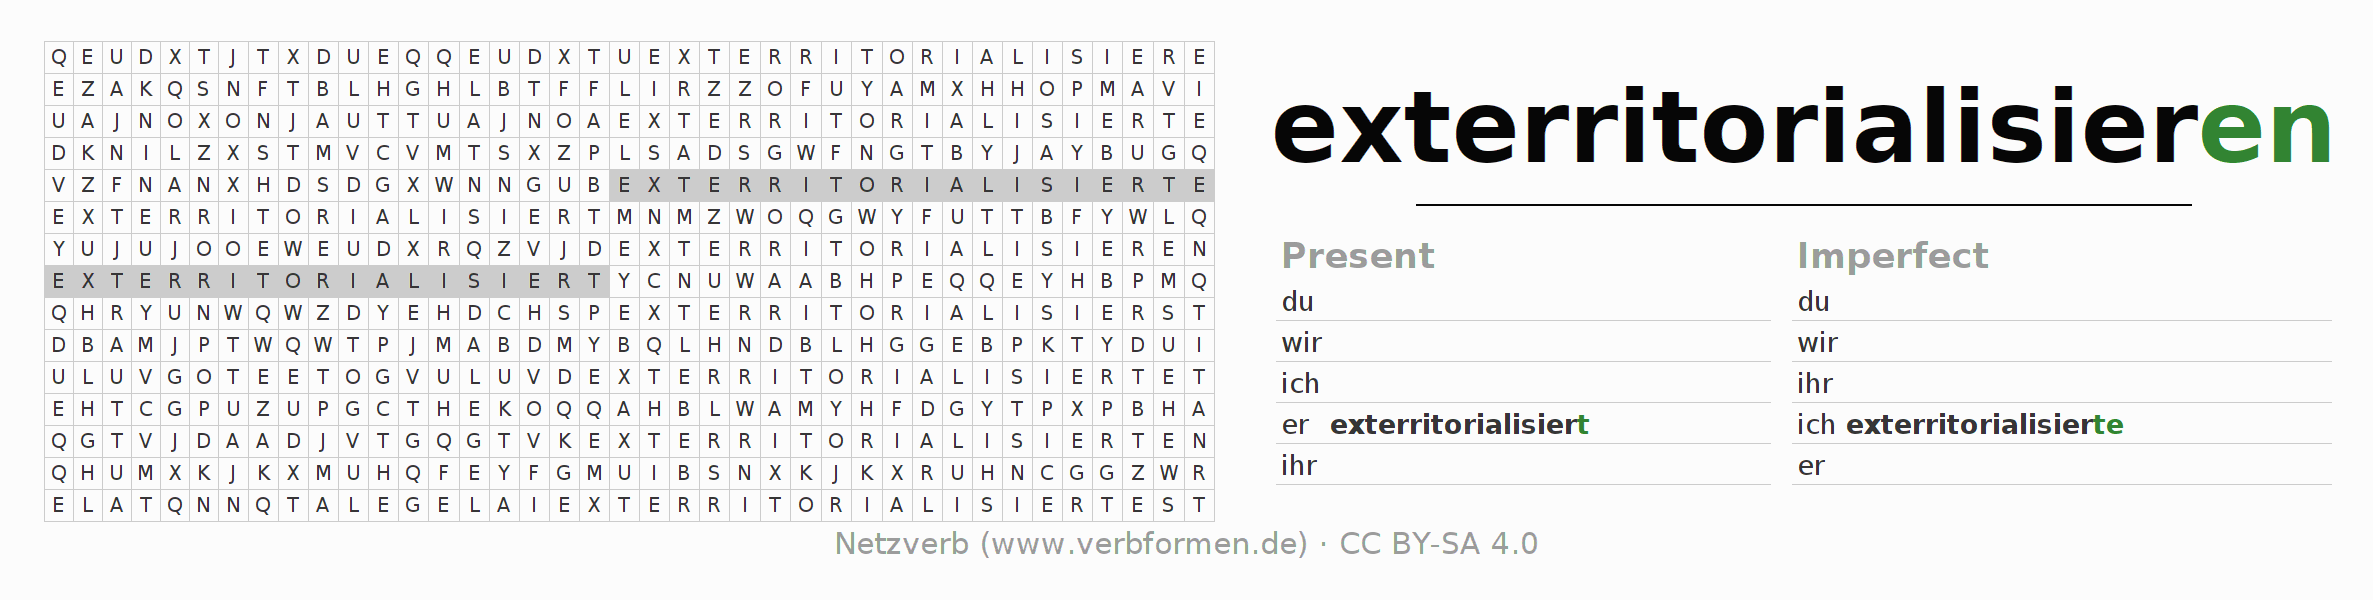 Word search puzzle for the conjugation of the verb exterritorialisieren